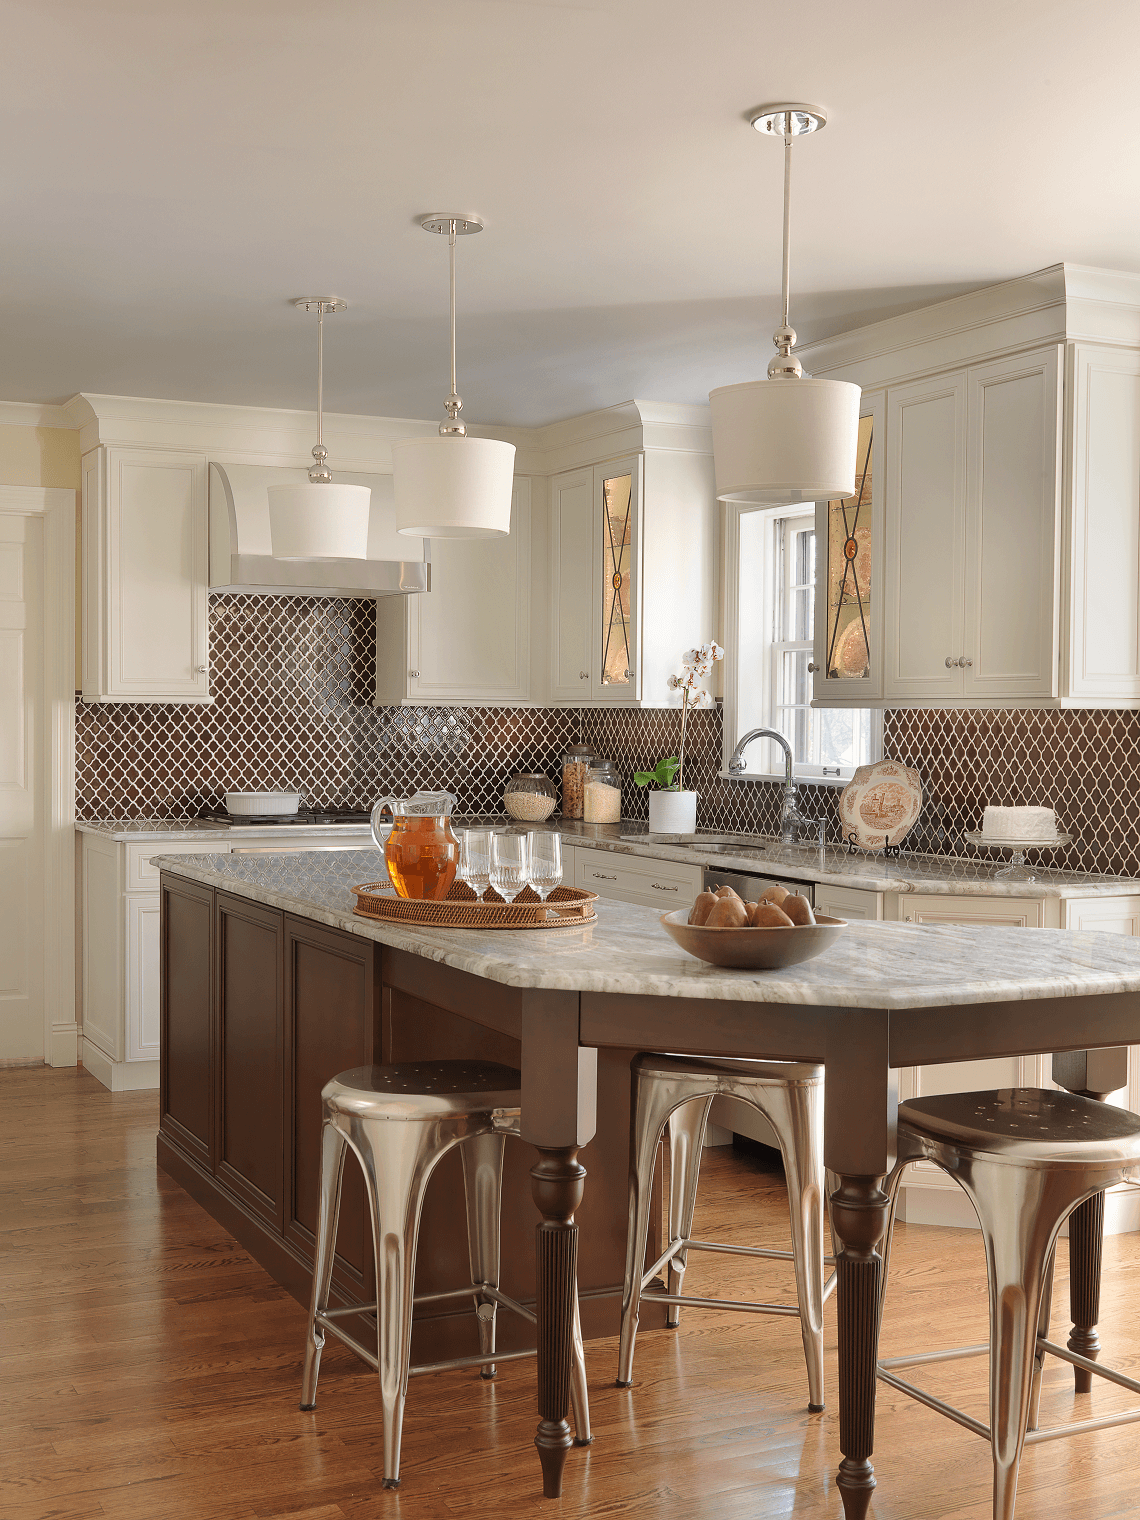 White Kitchen Cabinets with Moroccan Tile Backsplash by Beck